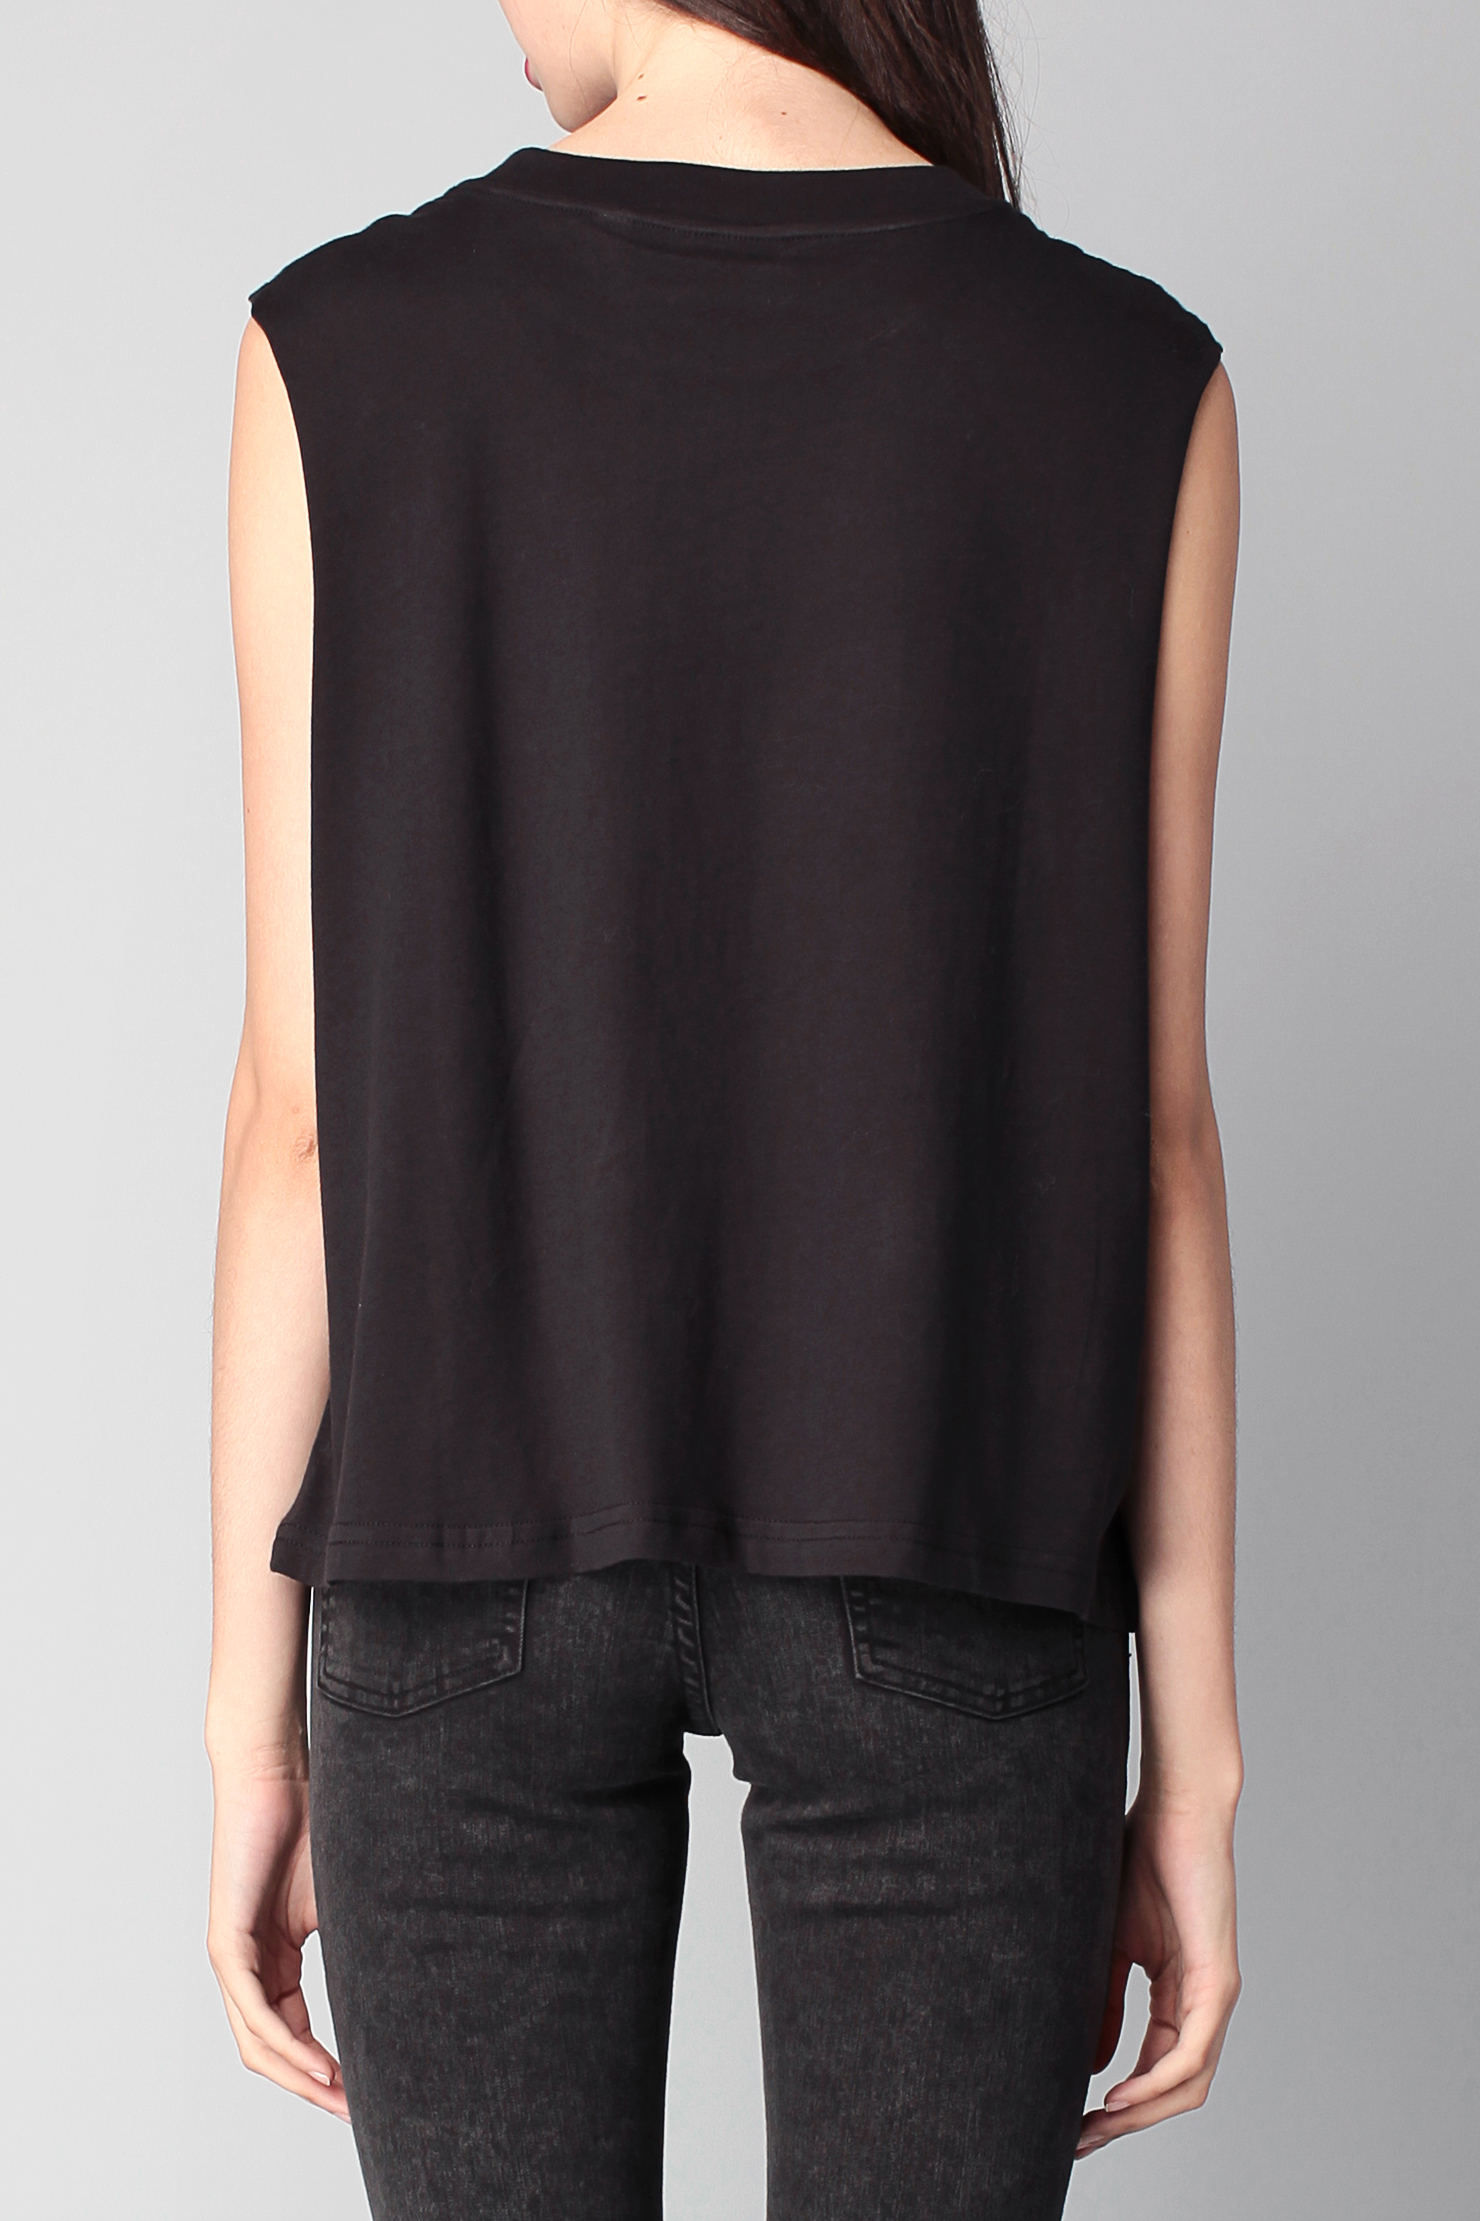 oldsmobileclub.ga has vast collection of stylish women's tunic tops to accent your unique style. Check out the variety of tunics and designer tunic tops. These tunic tops are unique and very trendy. Buy women's designer tunic tops at really affordable price.